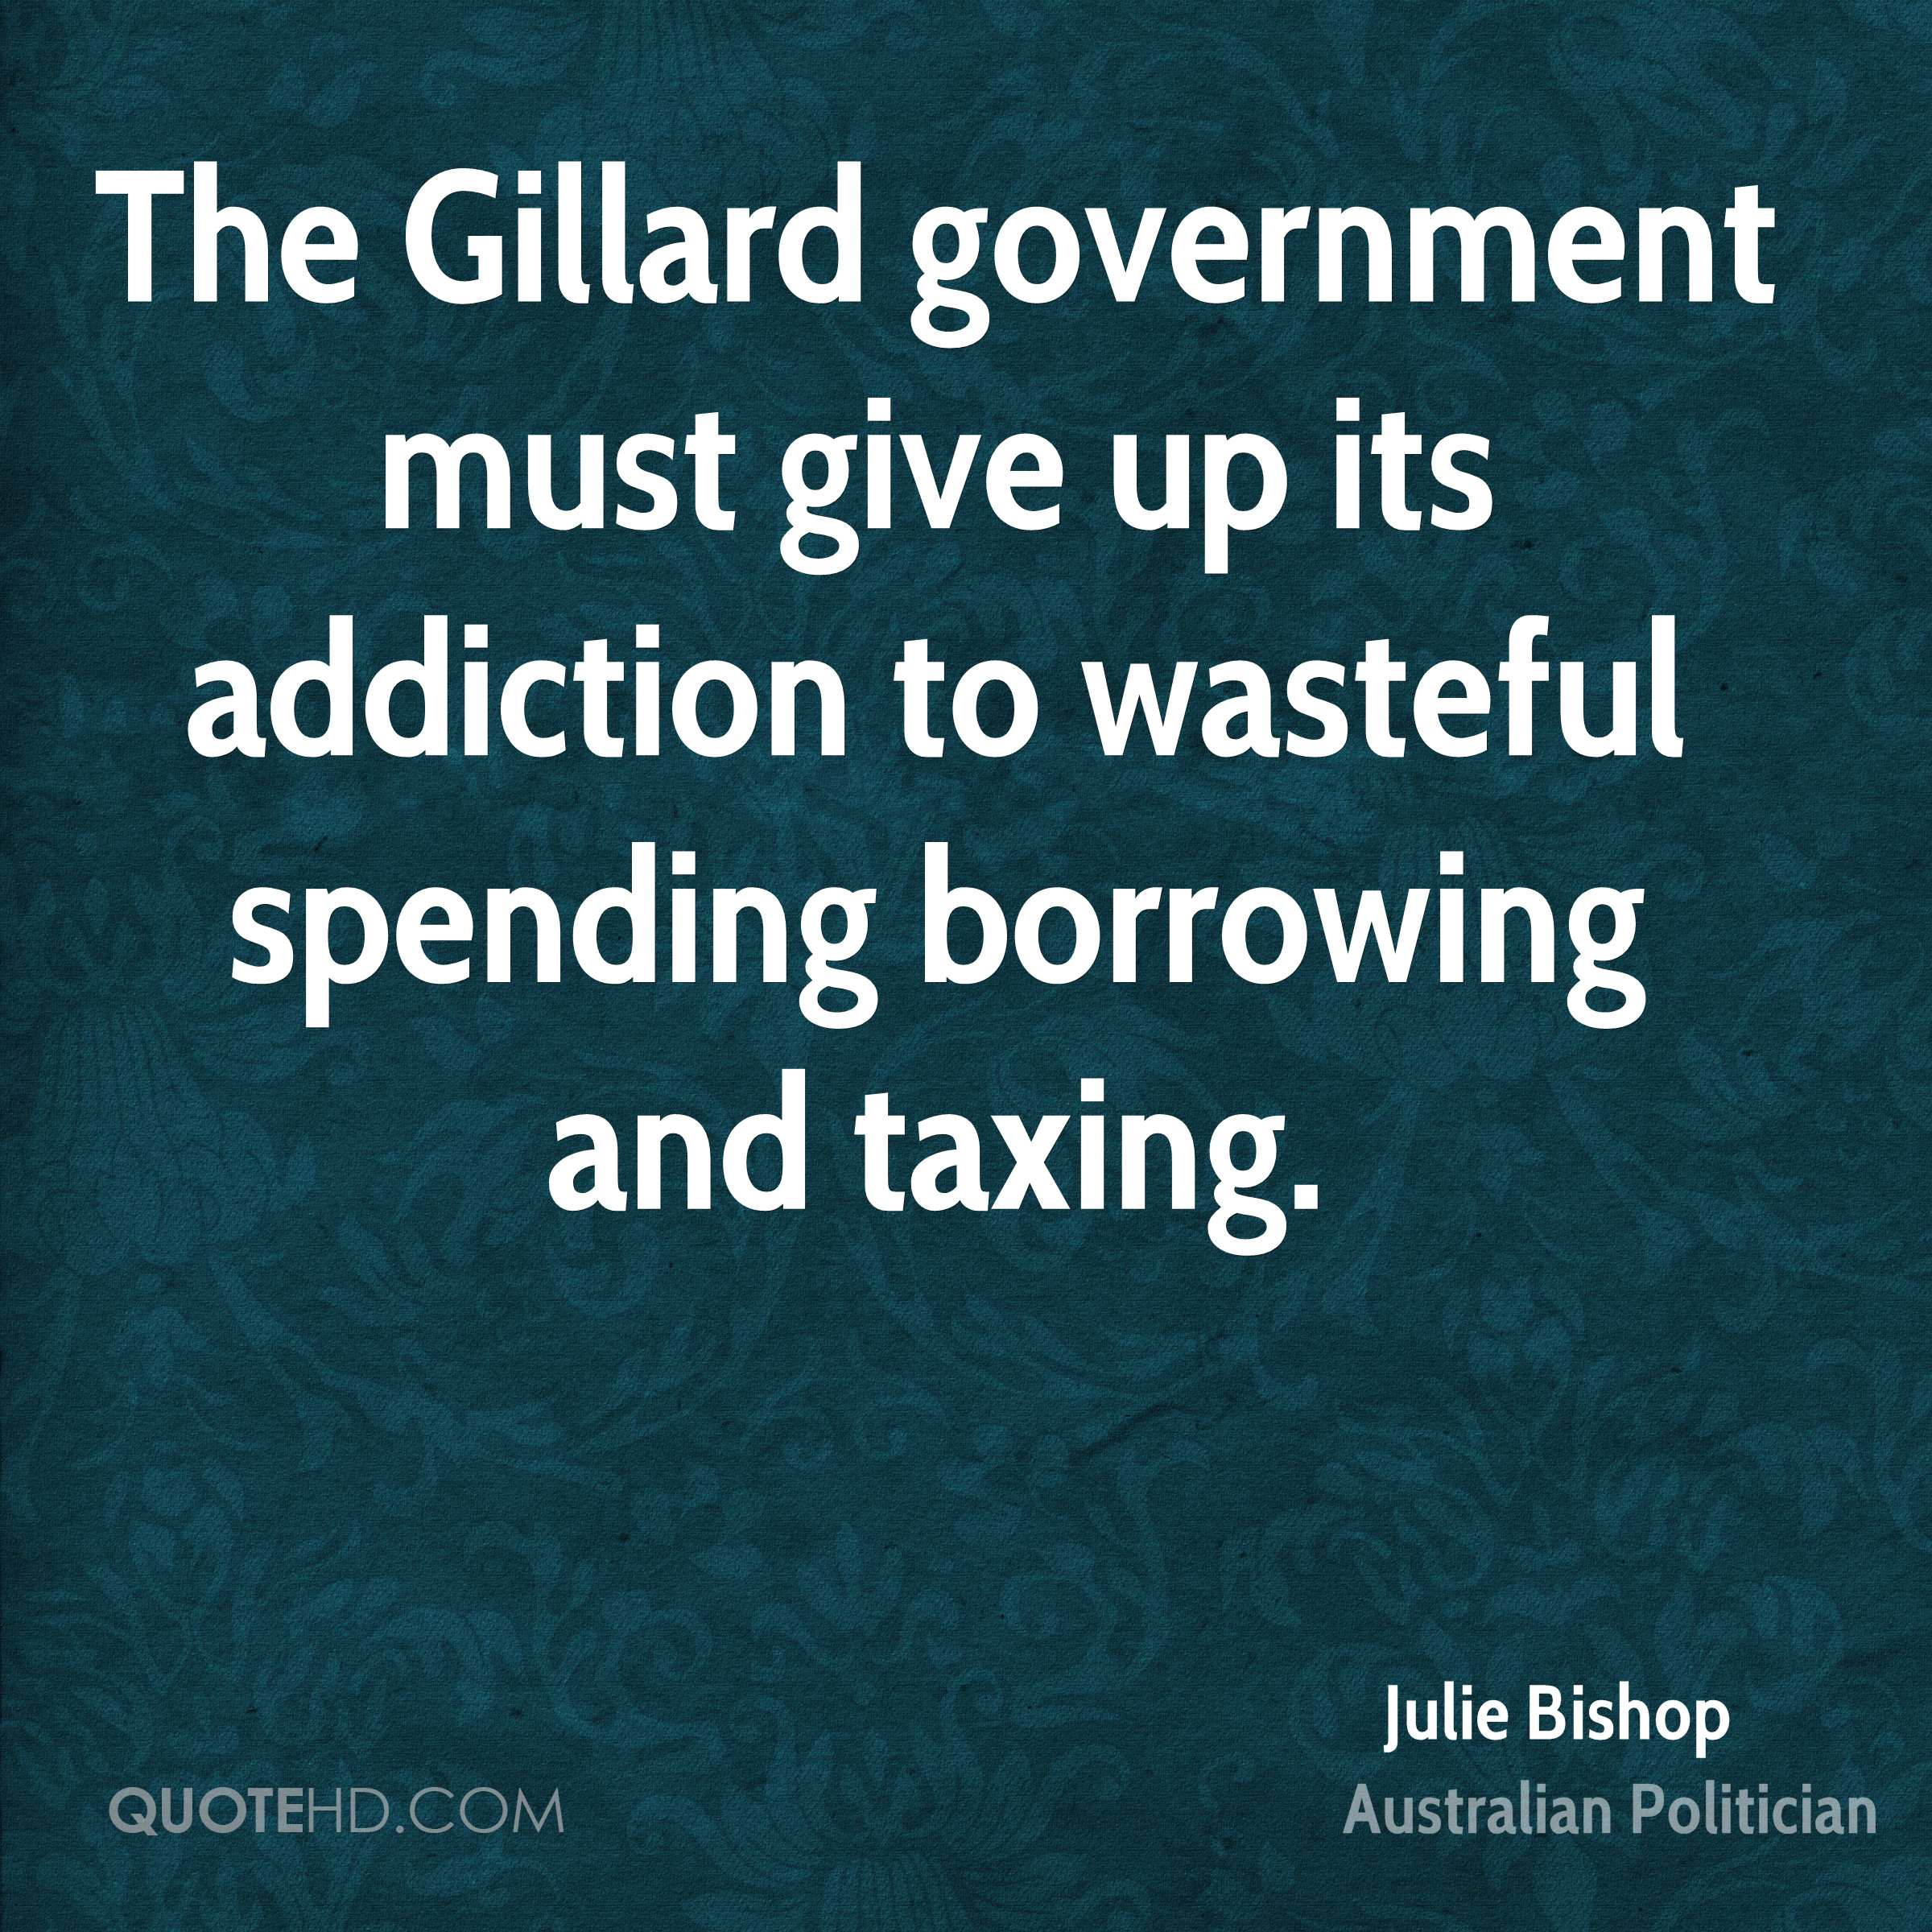 The Gillard government must give up its addiction to wasteful spending borrowing and taxing.